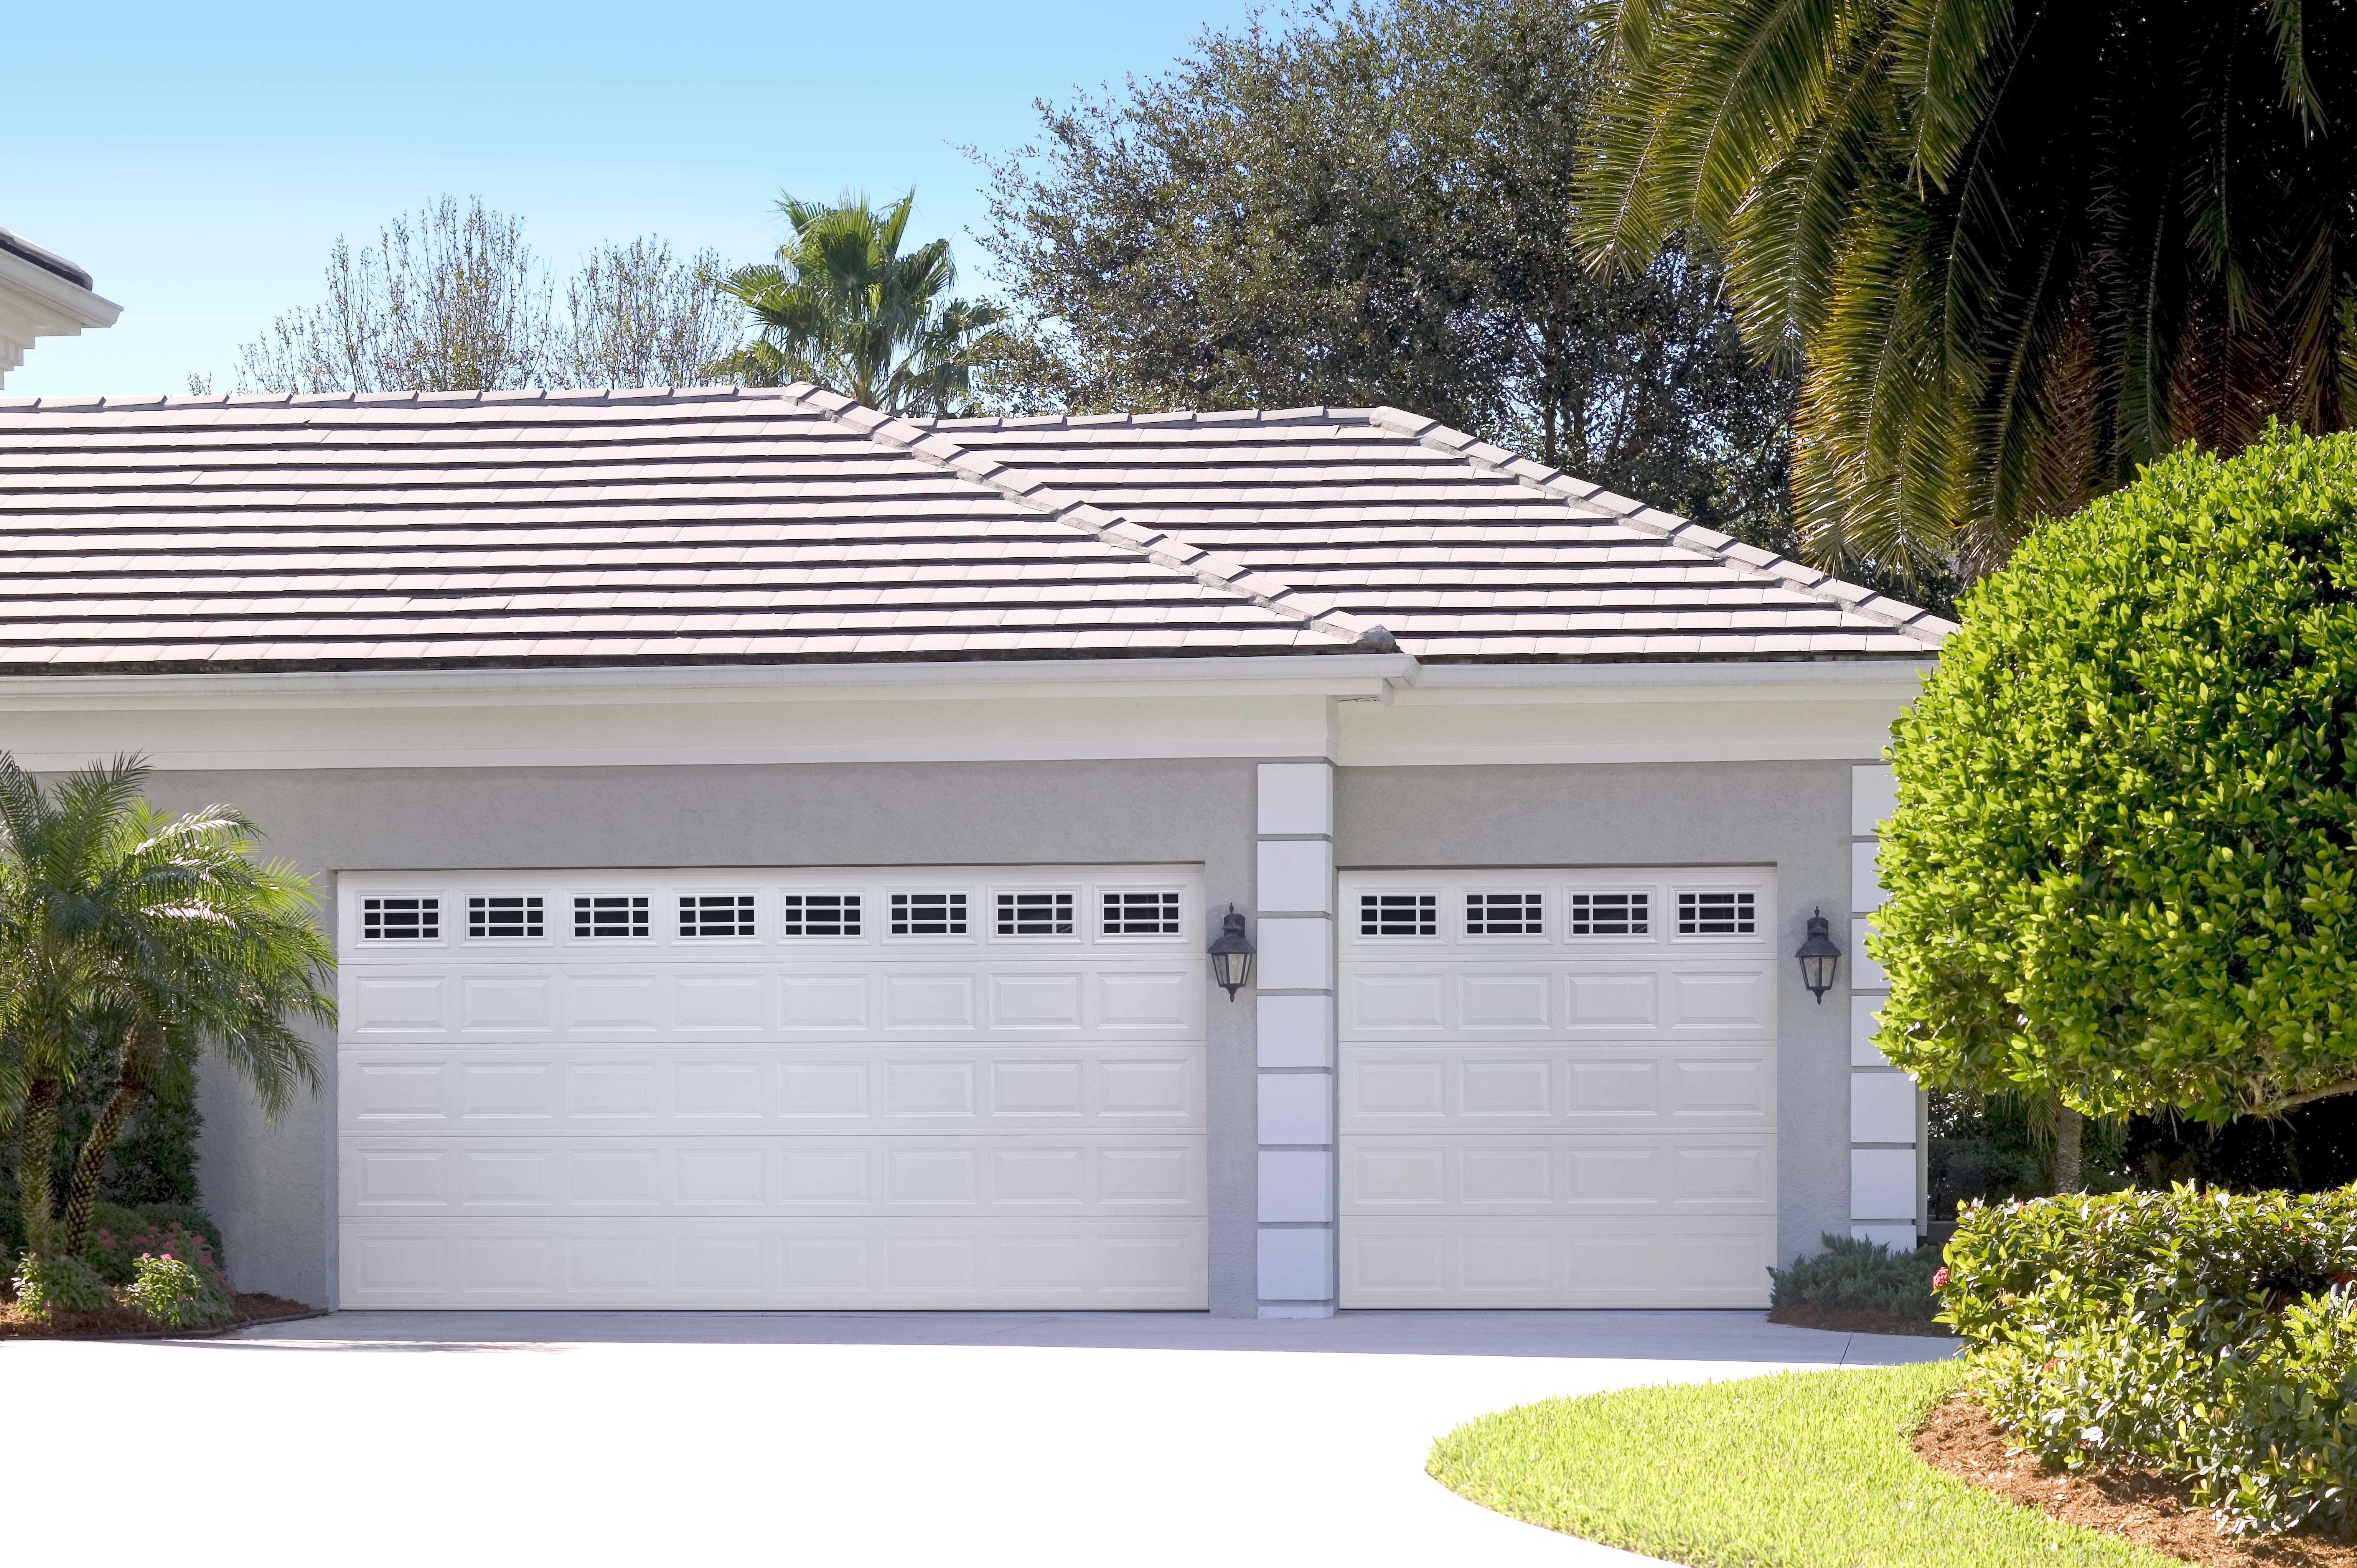 Carriage garage doors without windows  Pioneer Garage Doors Lincoln Ne  voteno  Pinterest